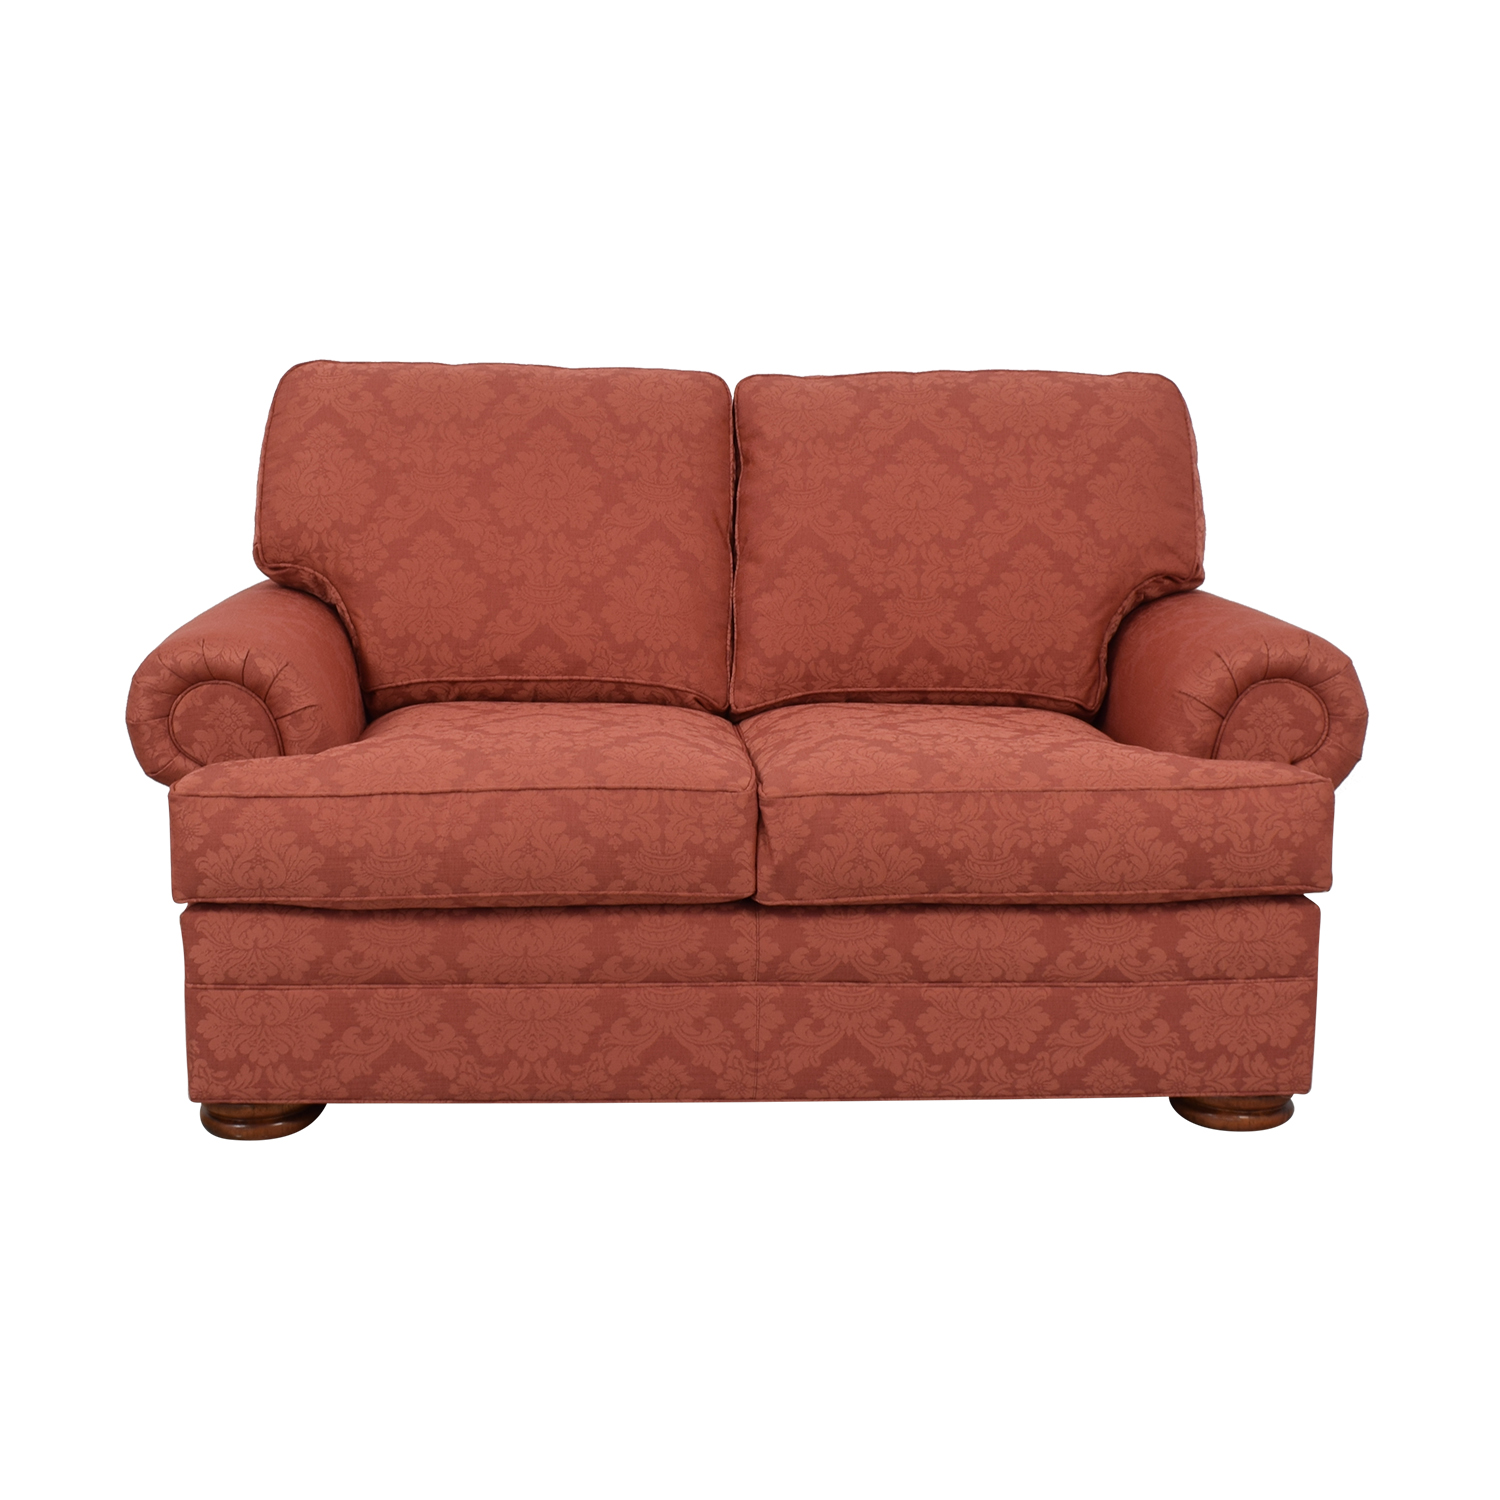 Thomasville Thomasville Custom Loveseat nyc